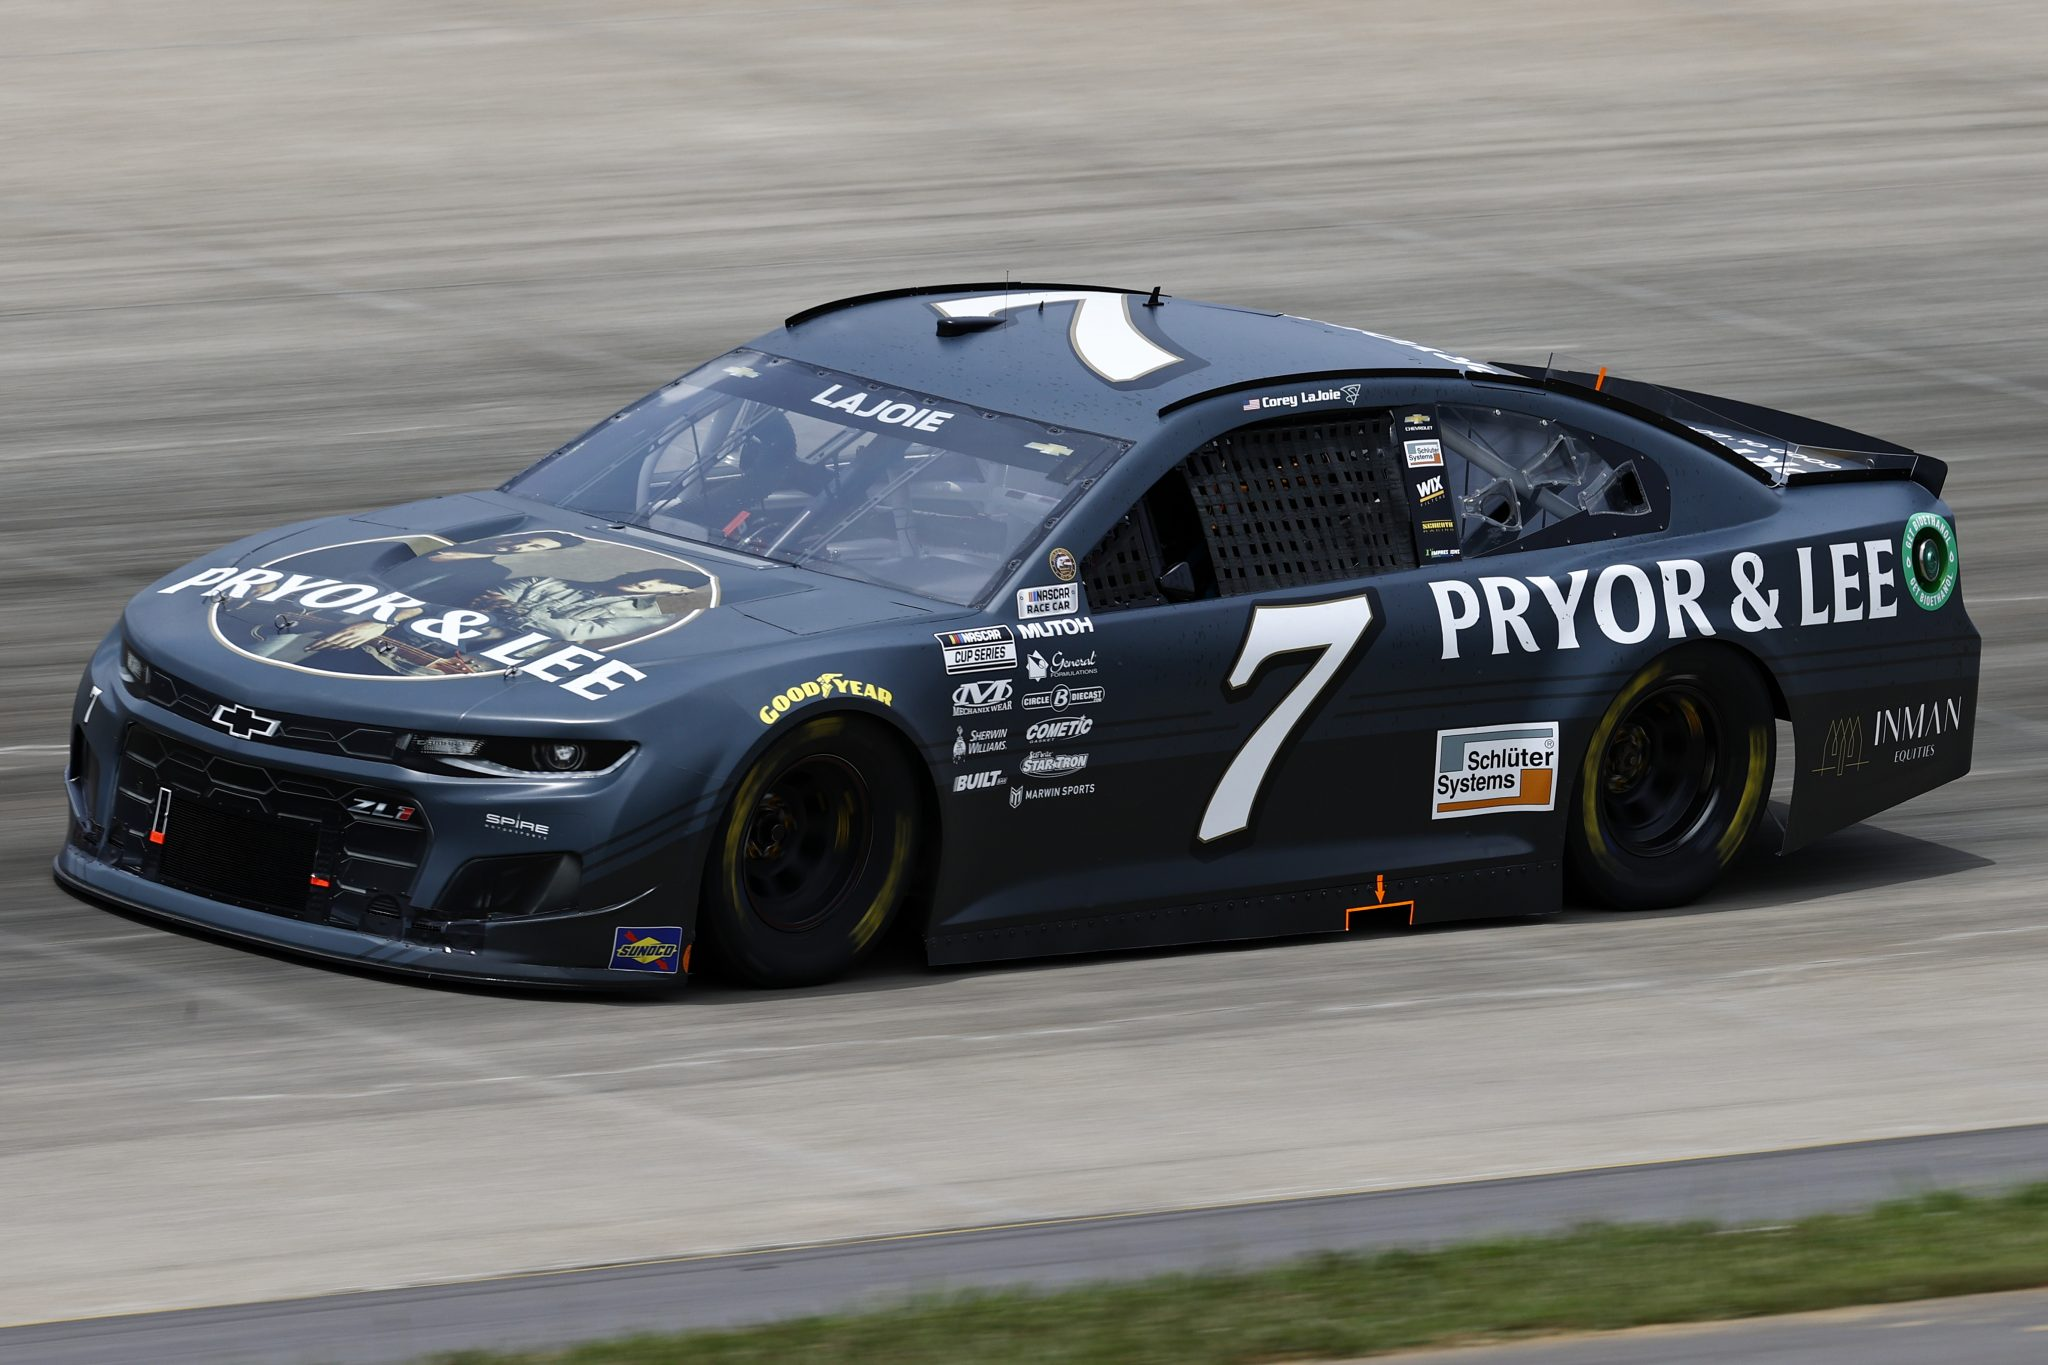 LEBANON, TENNESSEE - JUNE 19: Corey LaJoie, driver of the #7 Pryor & Lee Chevrolet, drives during practice for the NASCAR Cup Series Ally 400 at Nashville Superspeedway on June 19, 2021 in Lebanon, Tennessee. (Photo by Jared C. Tilton/Getty Images)   Getty Images